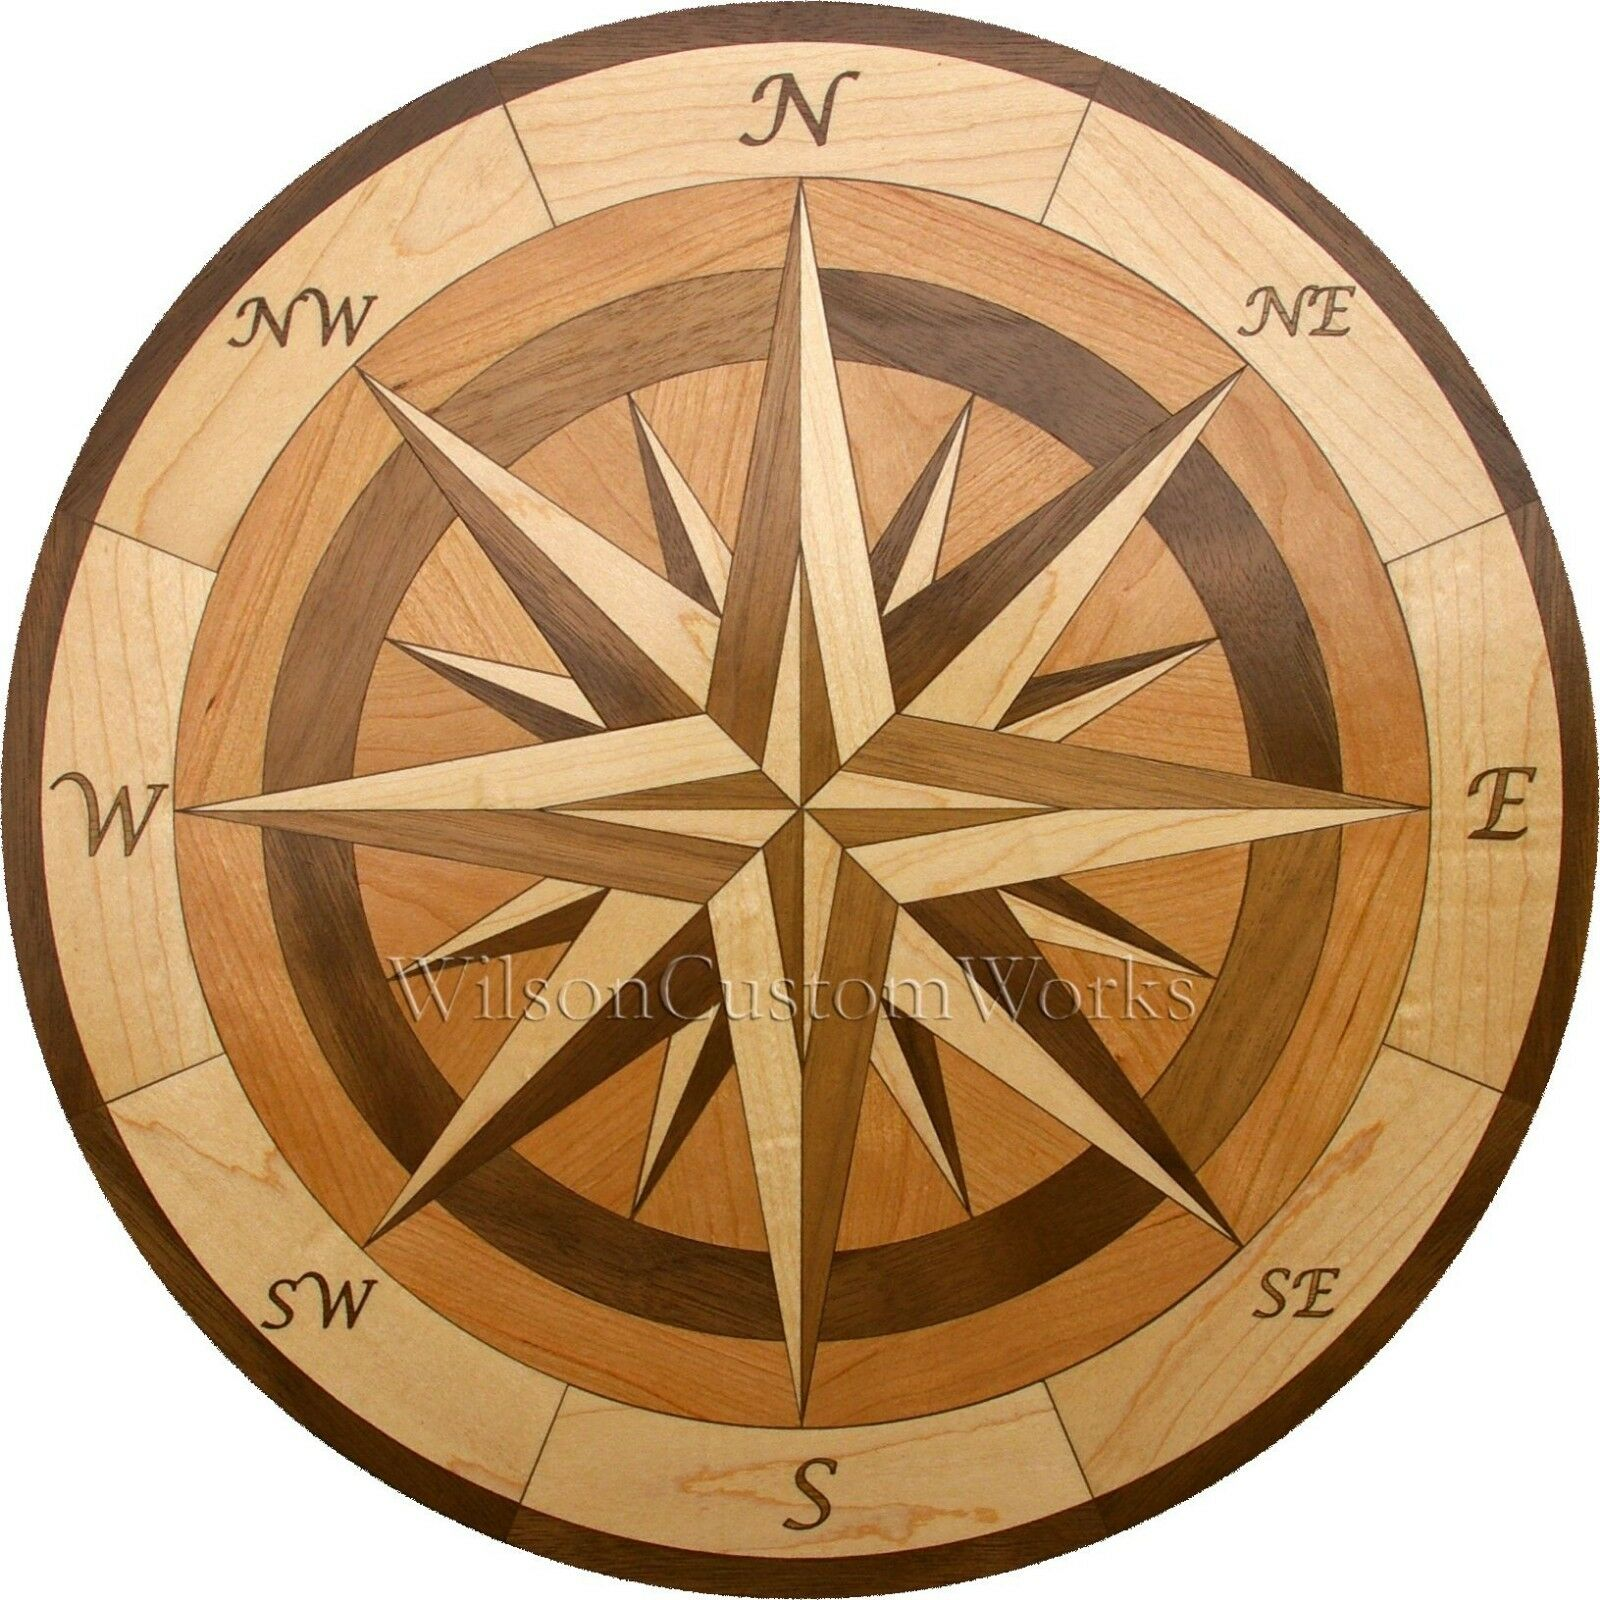 30  Wood Floor Inlay 100 Piece Compass Medallion kit DIY Flooring Table Box